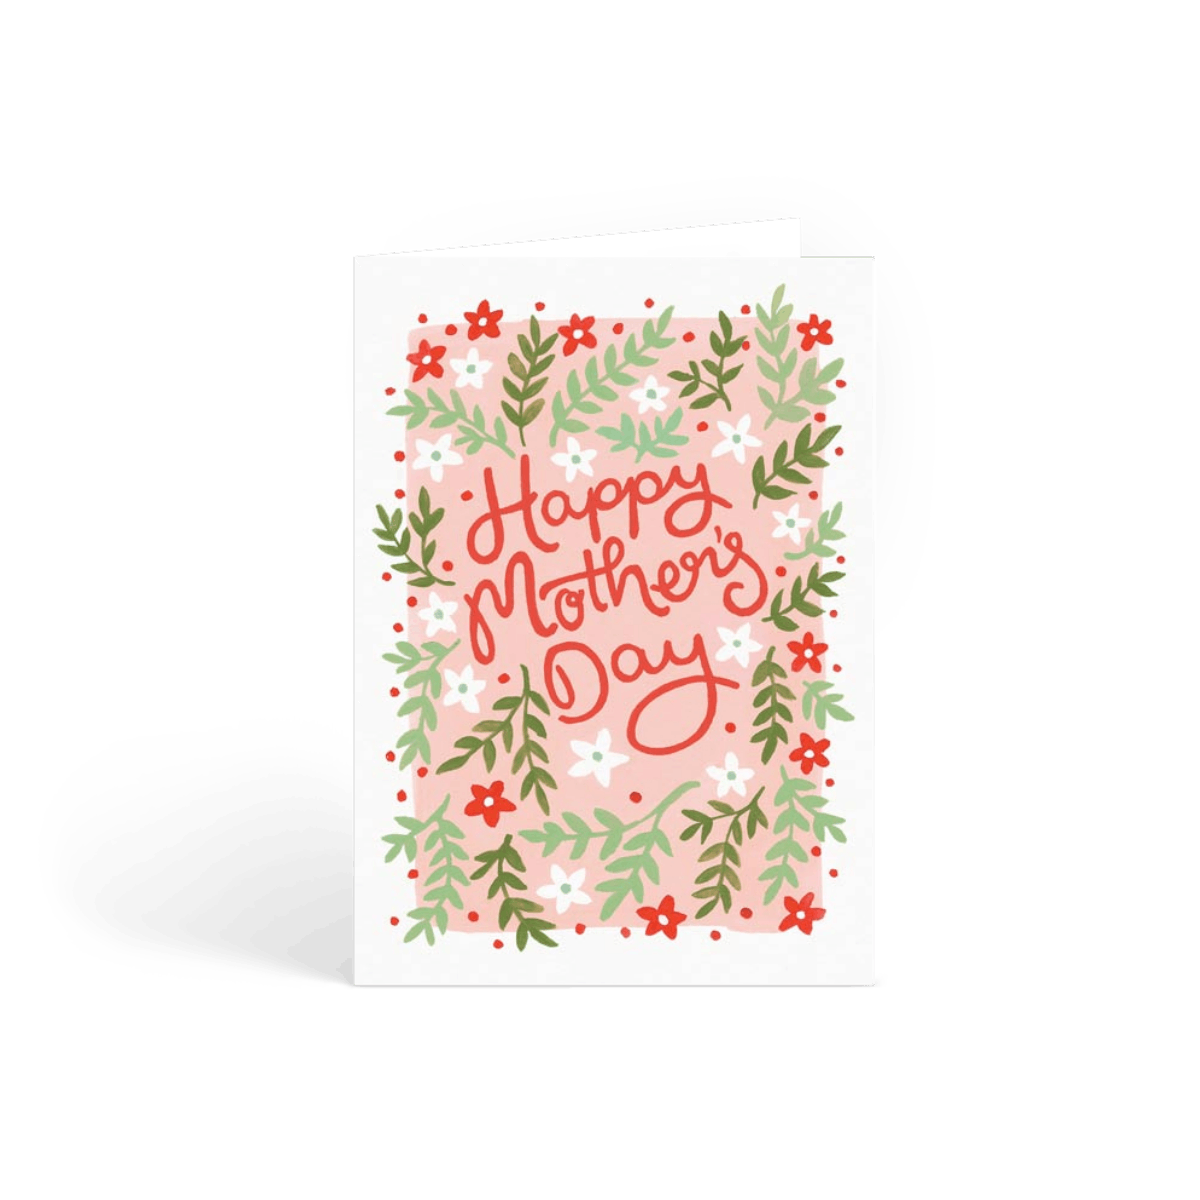 Https%3a%2f%2fwww.papier.com%2fproduct image%2f12731%2f2%2fmother s day flowers 3199 avant 1477411087.png?ixlib=rb 1.1